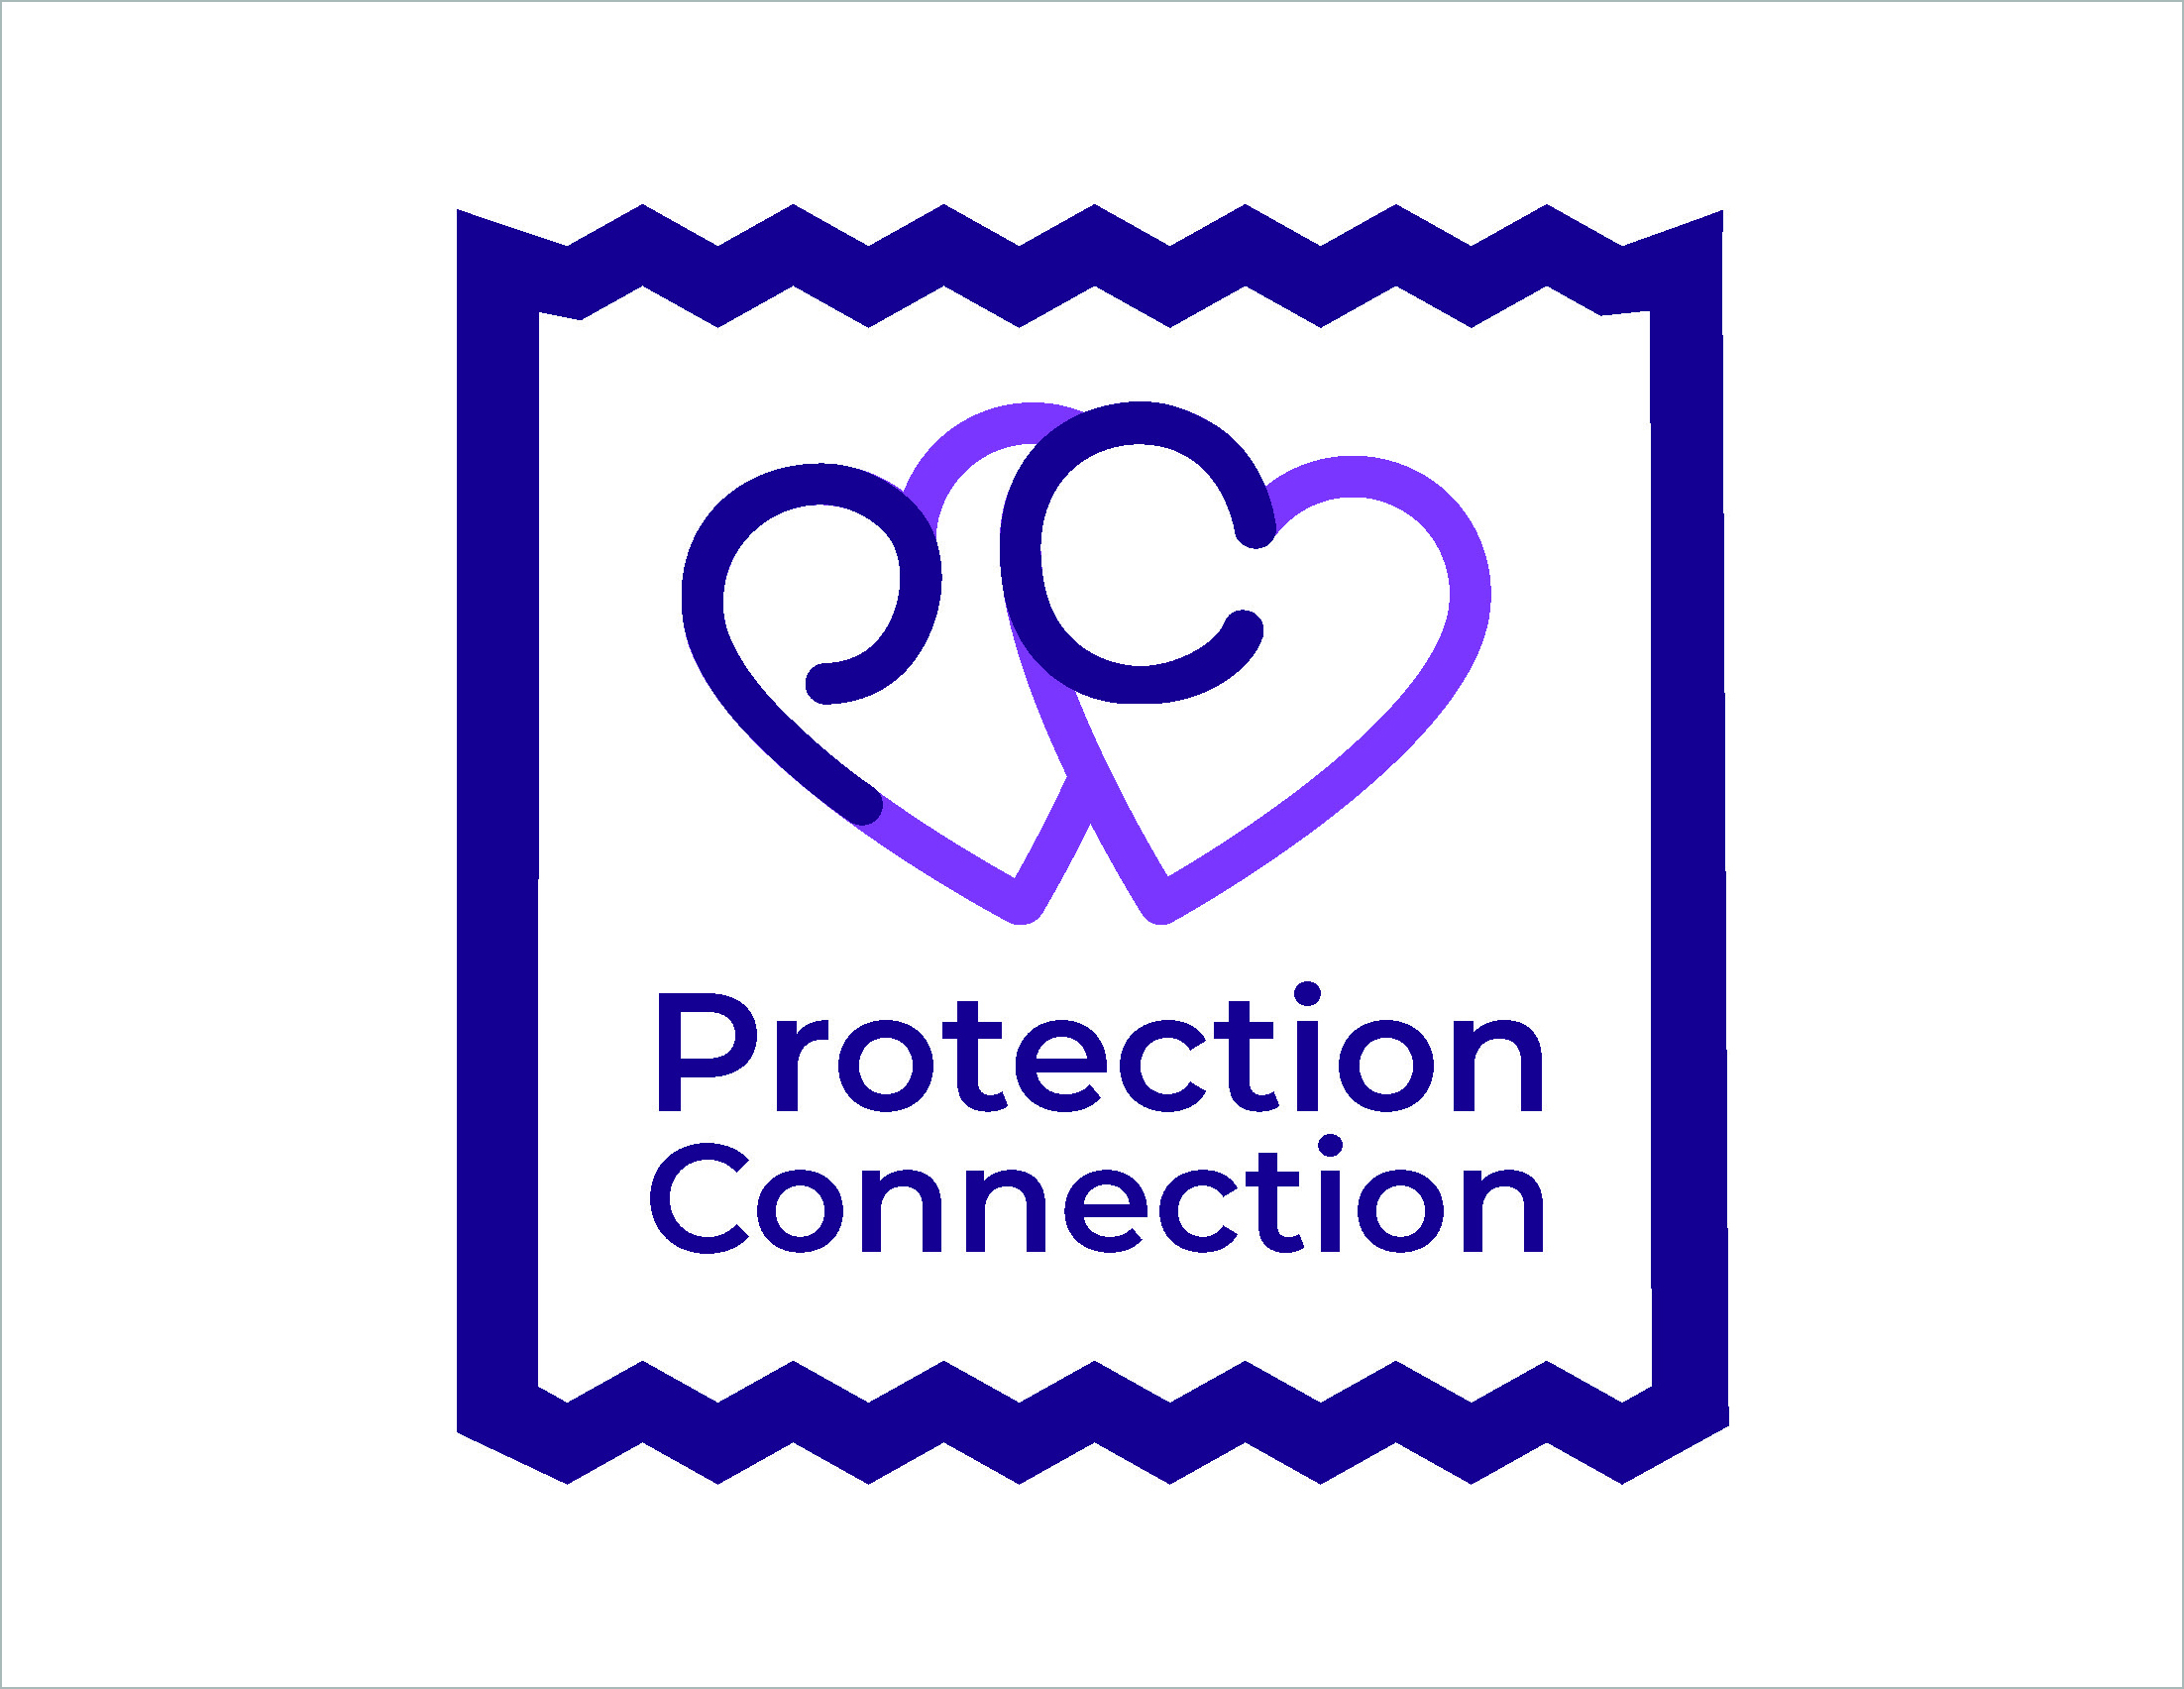 A logo of interlocking hearts that reads Protection Connection.